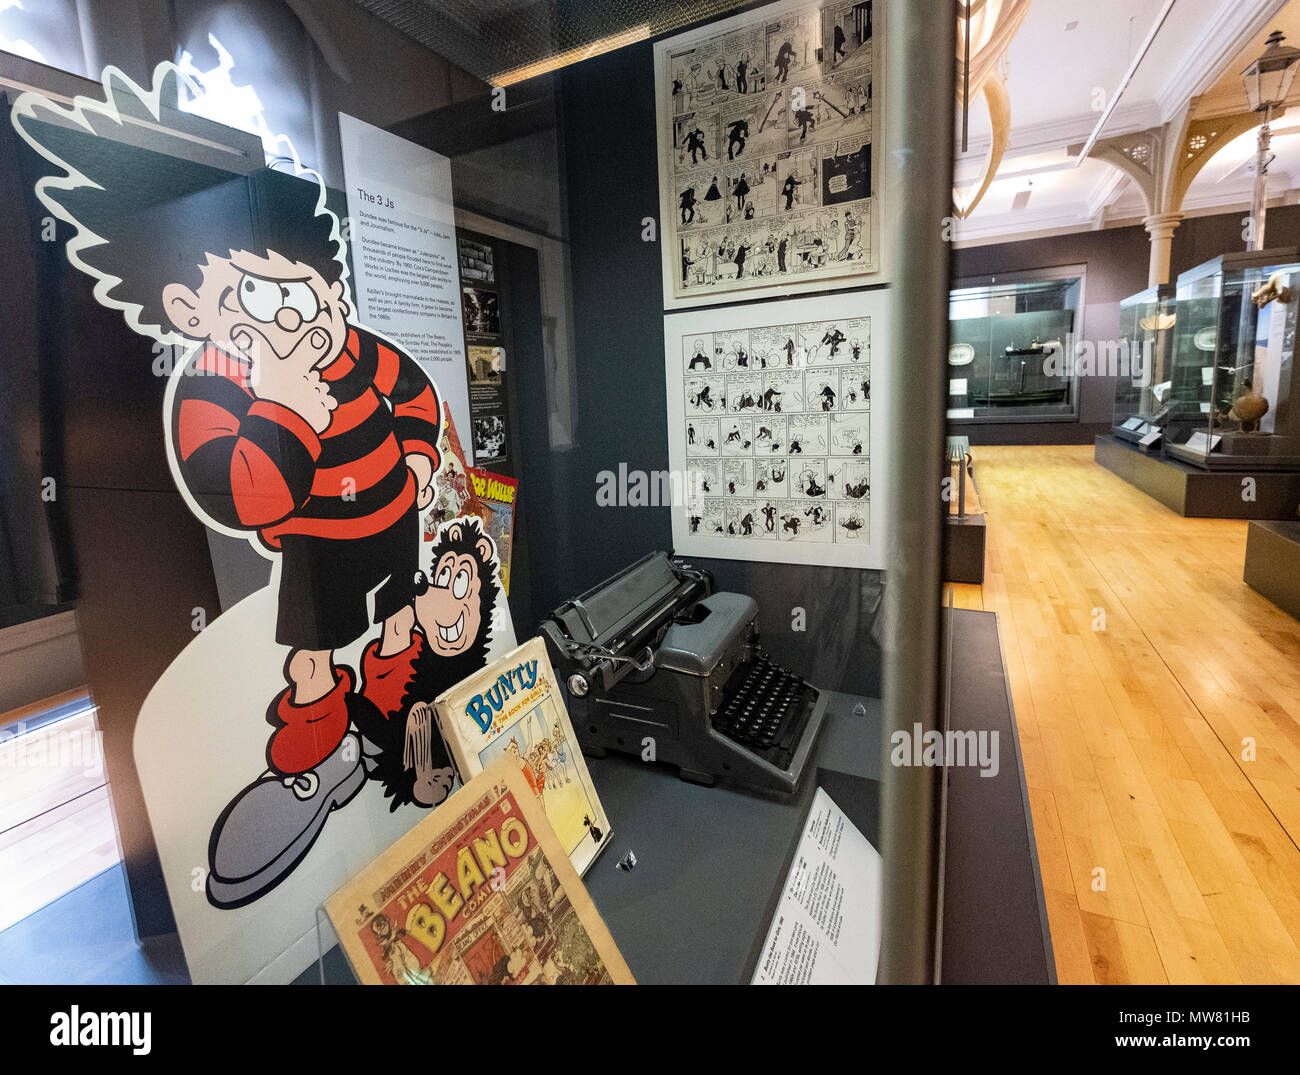 View of exhibit of local comics inside the McManus art gallery and museum in Dundee, Tayside, Scotland, UK - Stock Image